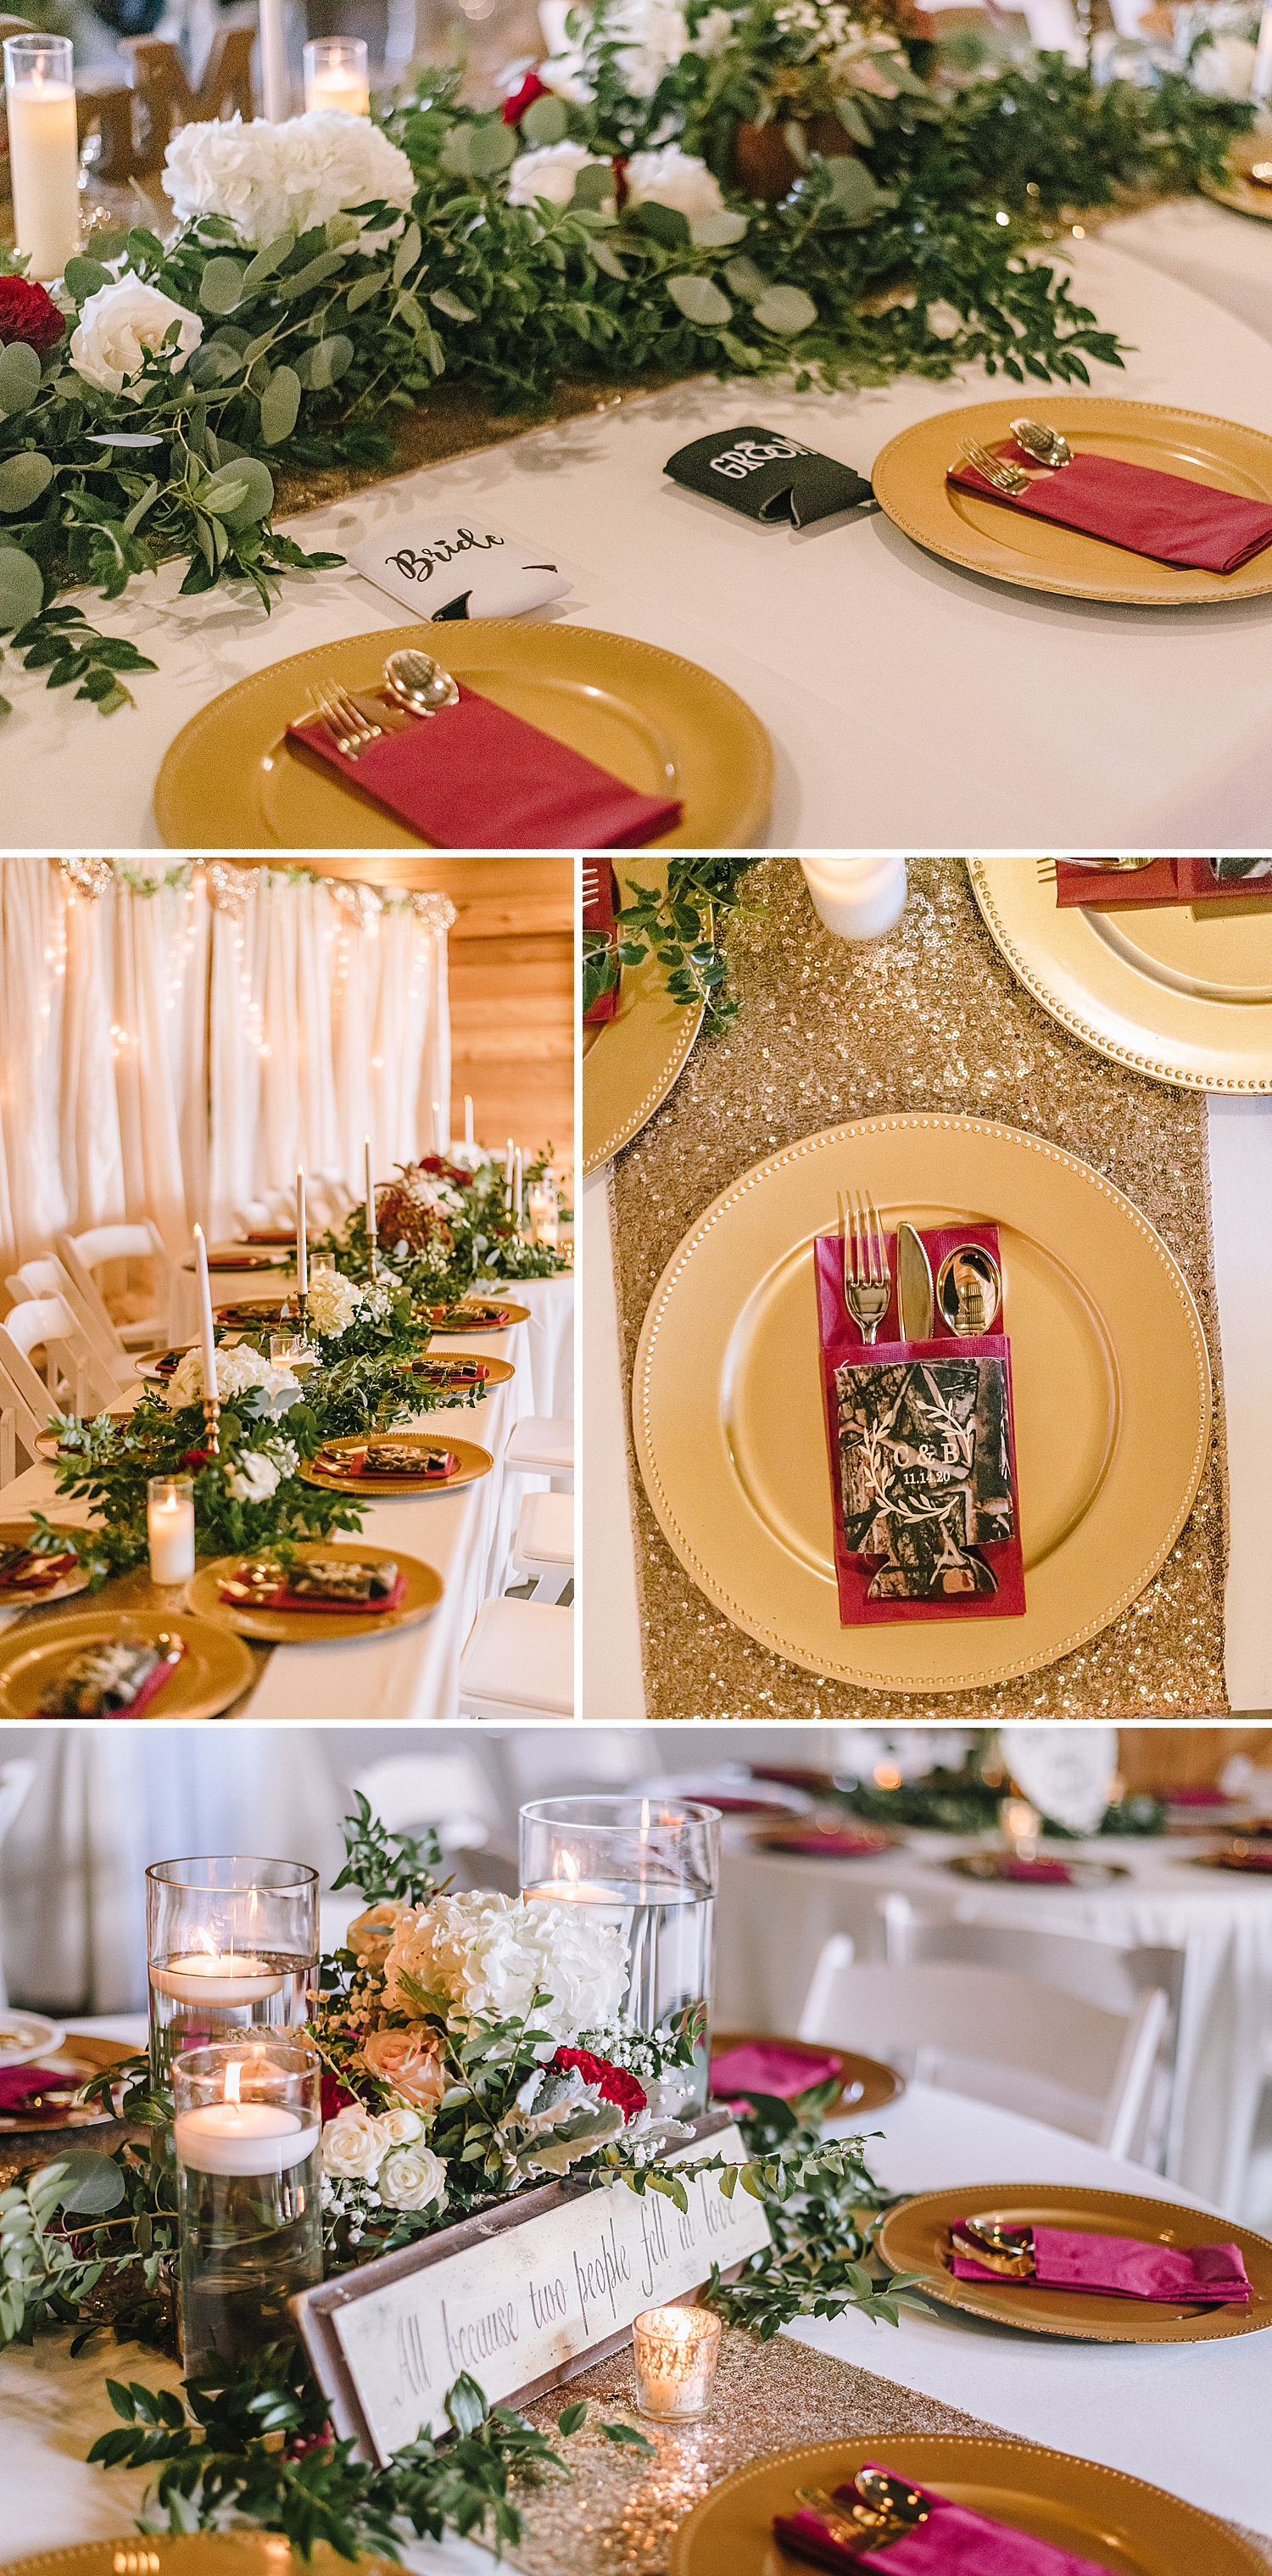 Geronimo-Oaks-Wedding-Venue-Seguin-Texas-Elegant-Navy-Burgundy-Wedding-Carly-Barton-Photography_0005.jpg